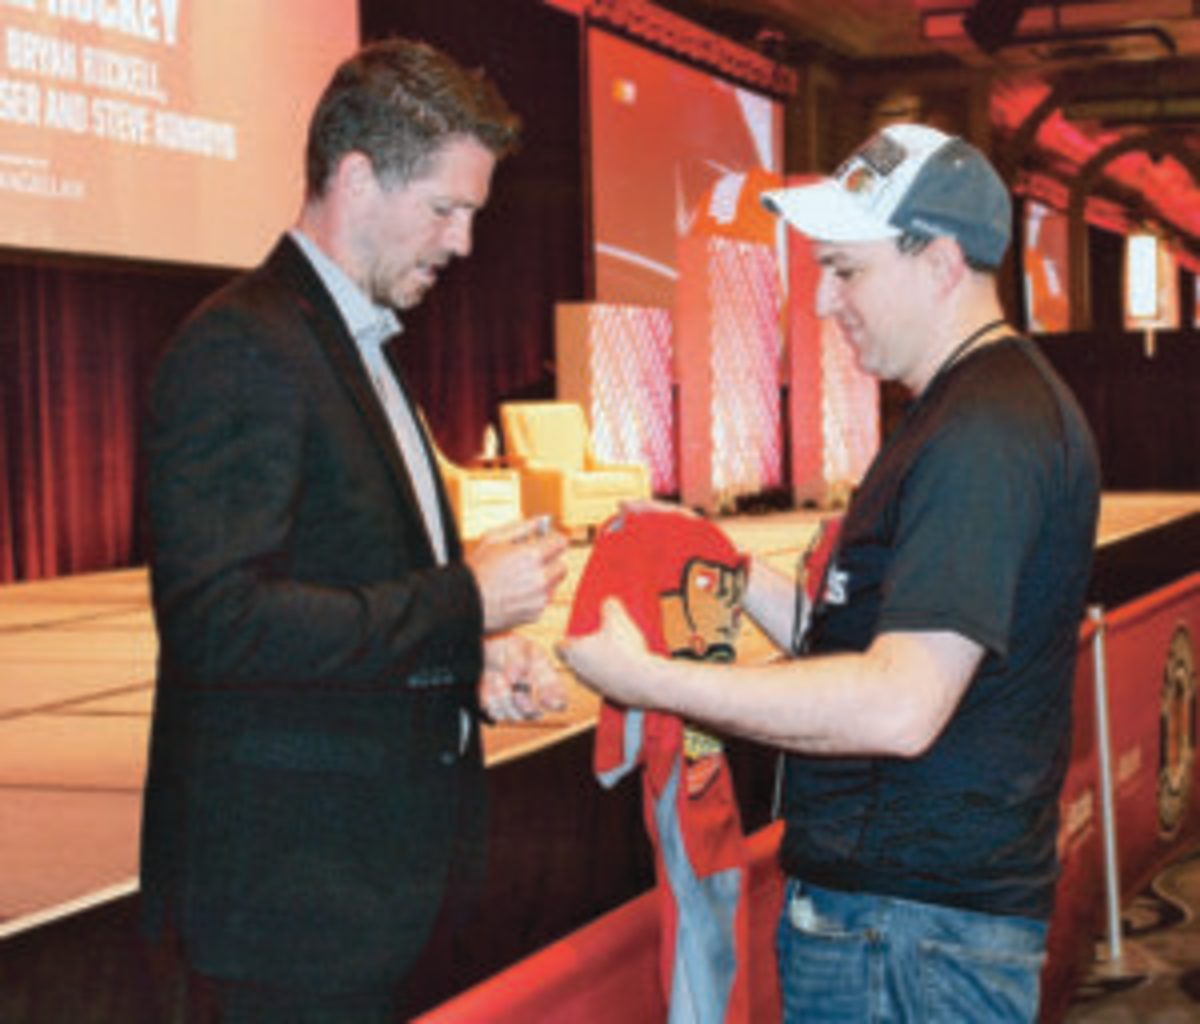 Former Chicago Blackhawks player Colin Fraser (left) signs an autograph for a fan.